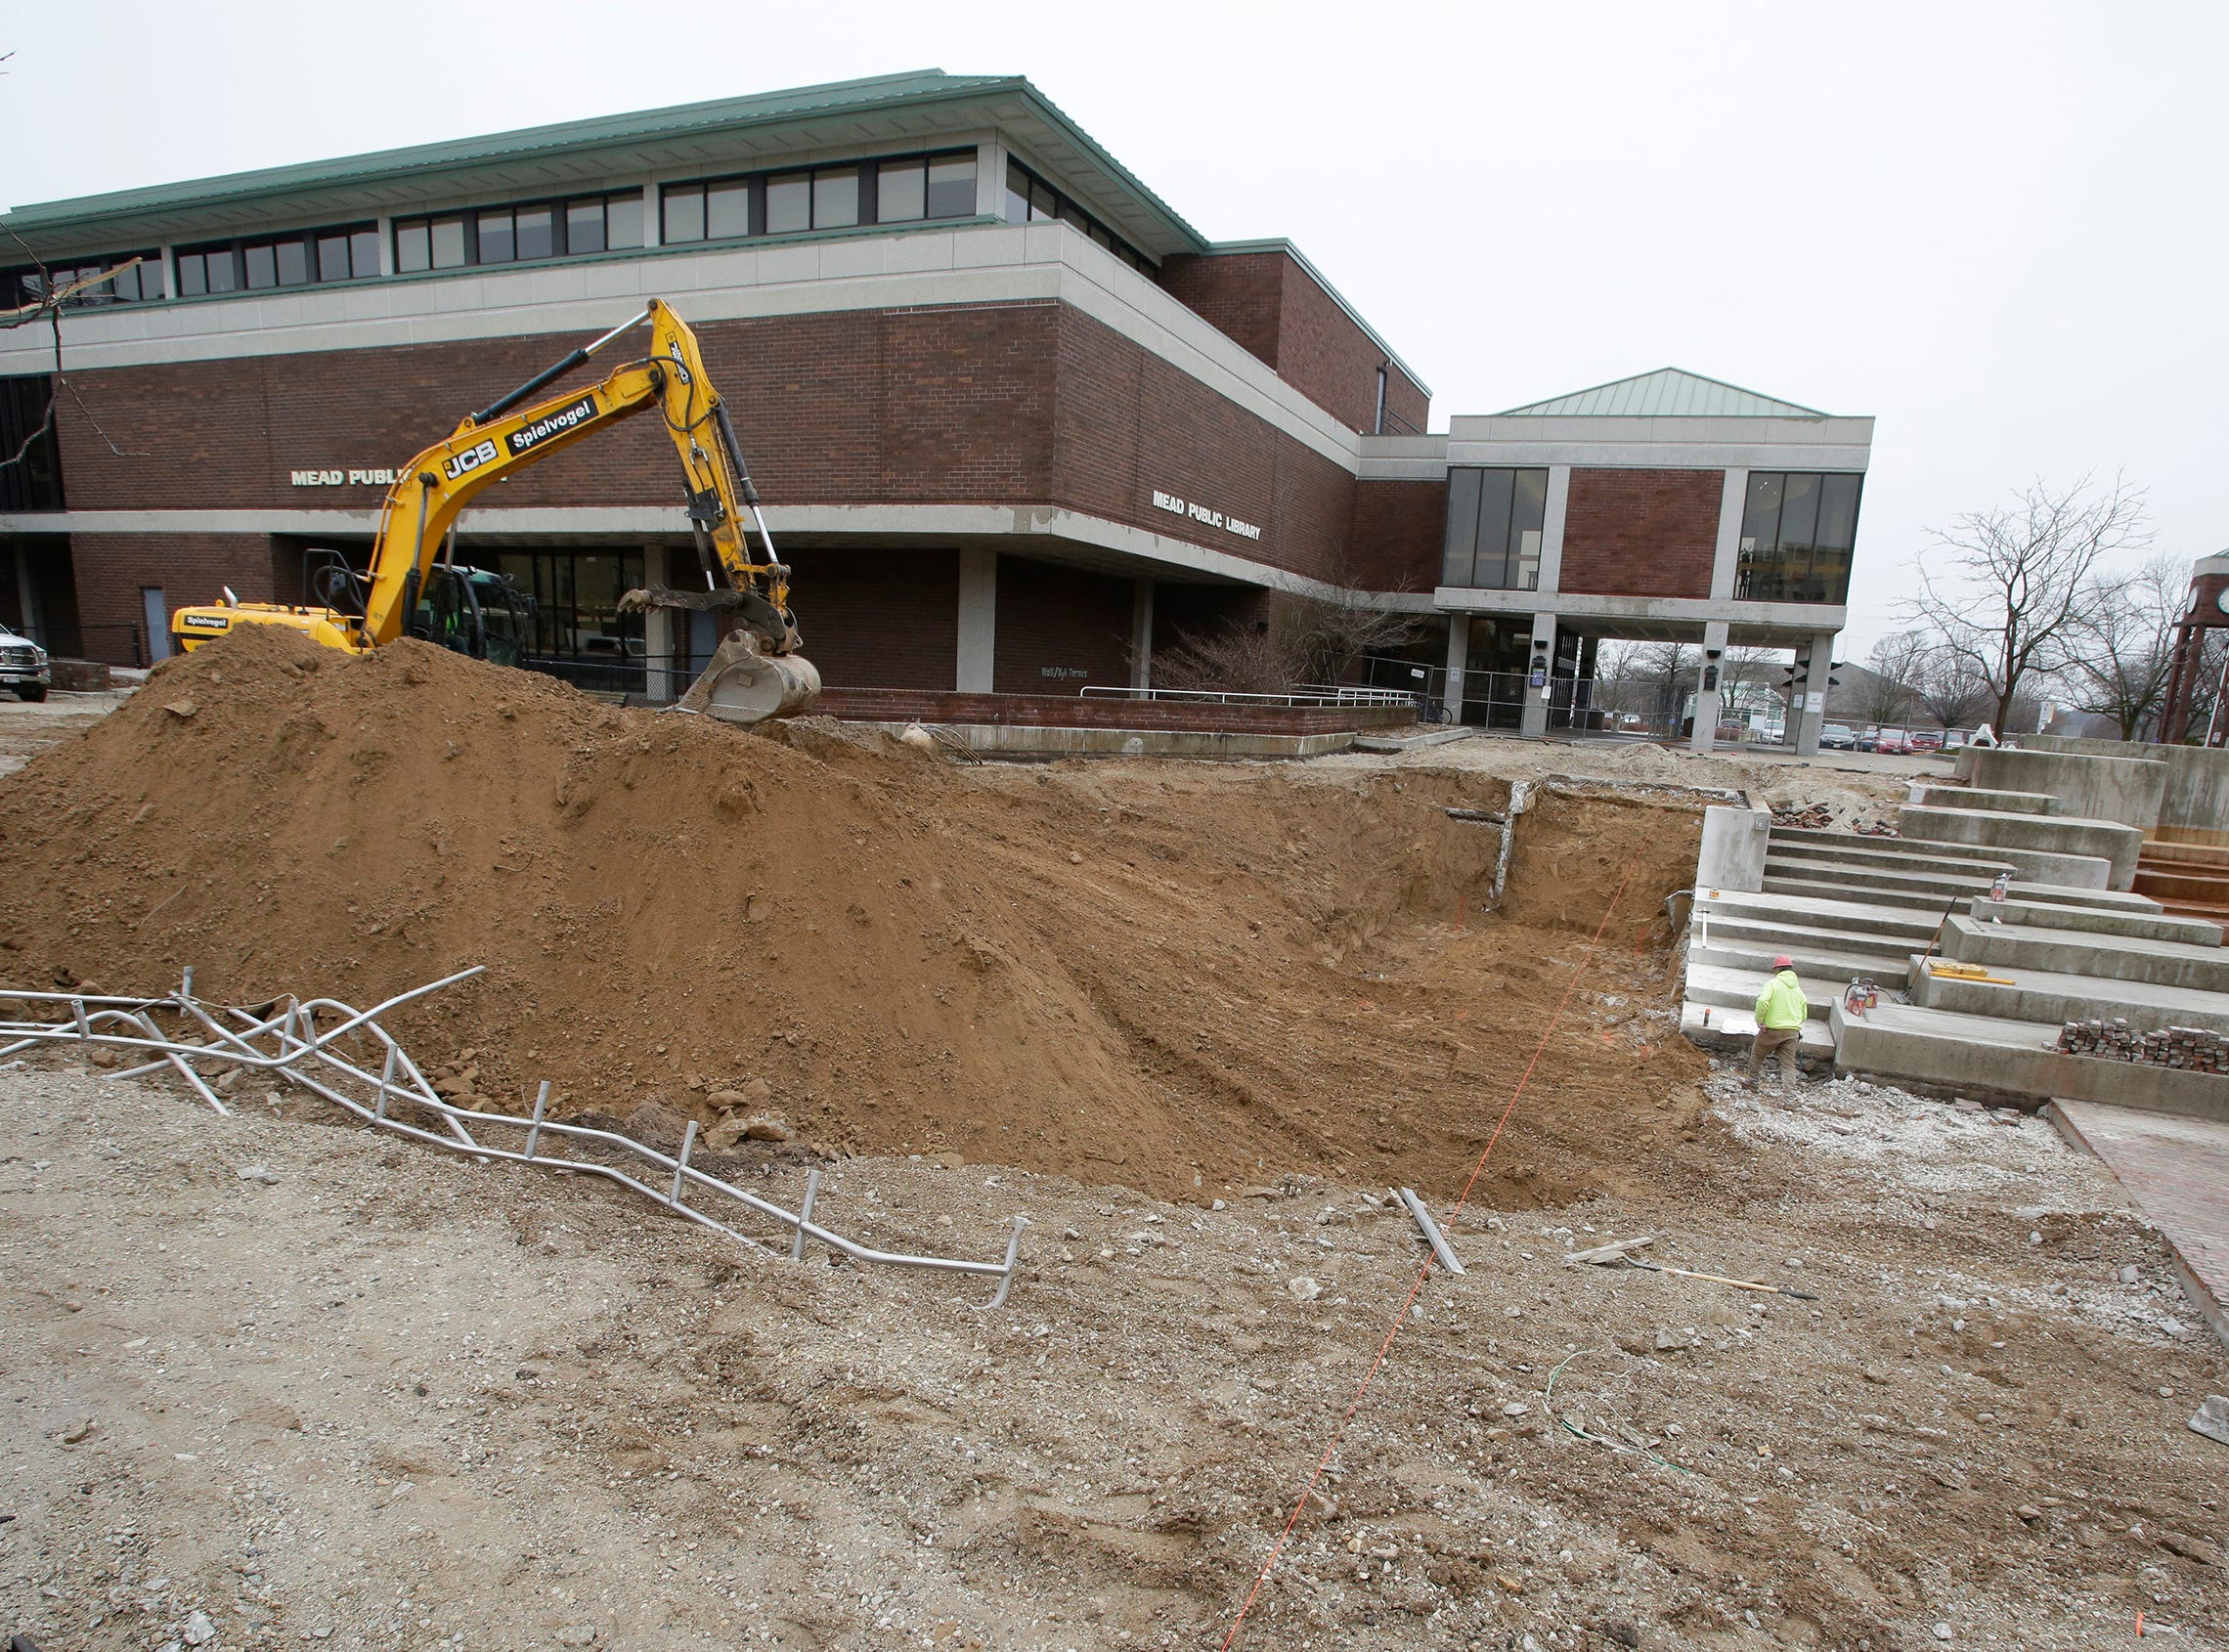 An exterior of the renovation work being performed on the Mead Public Library Plaza, Wednesday, May 1, 2019, in Sheboygan, Wis.